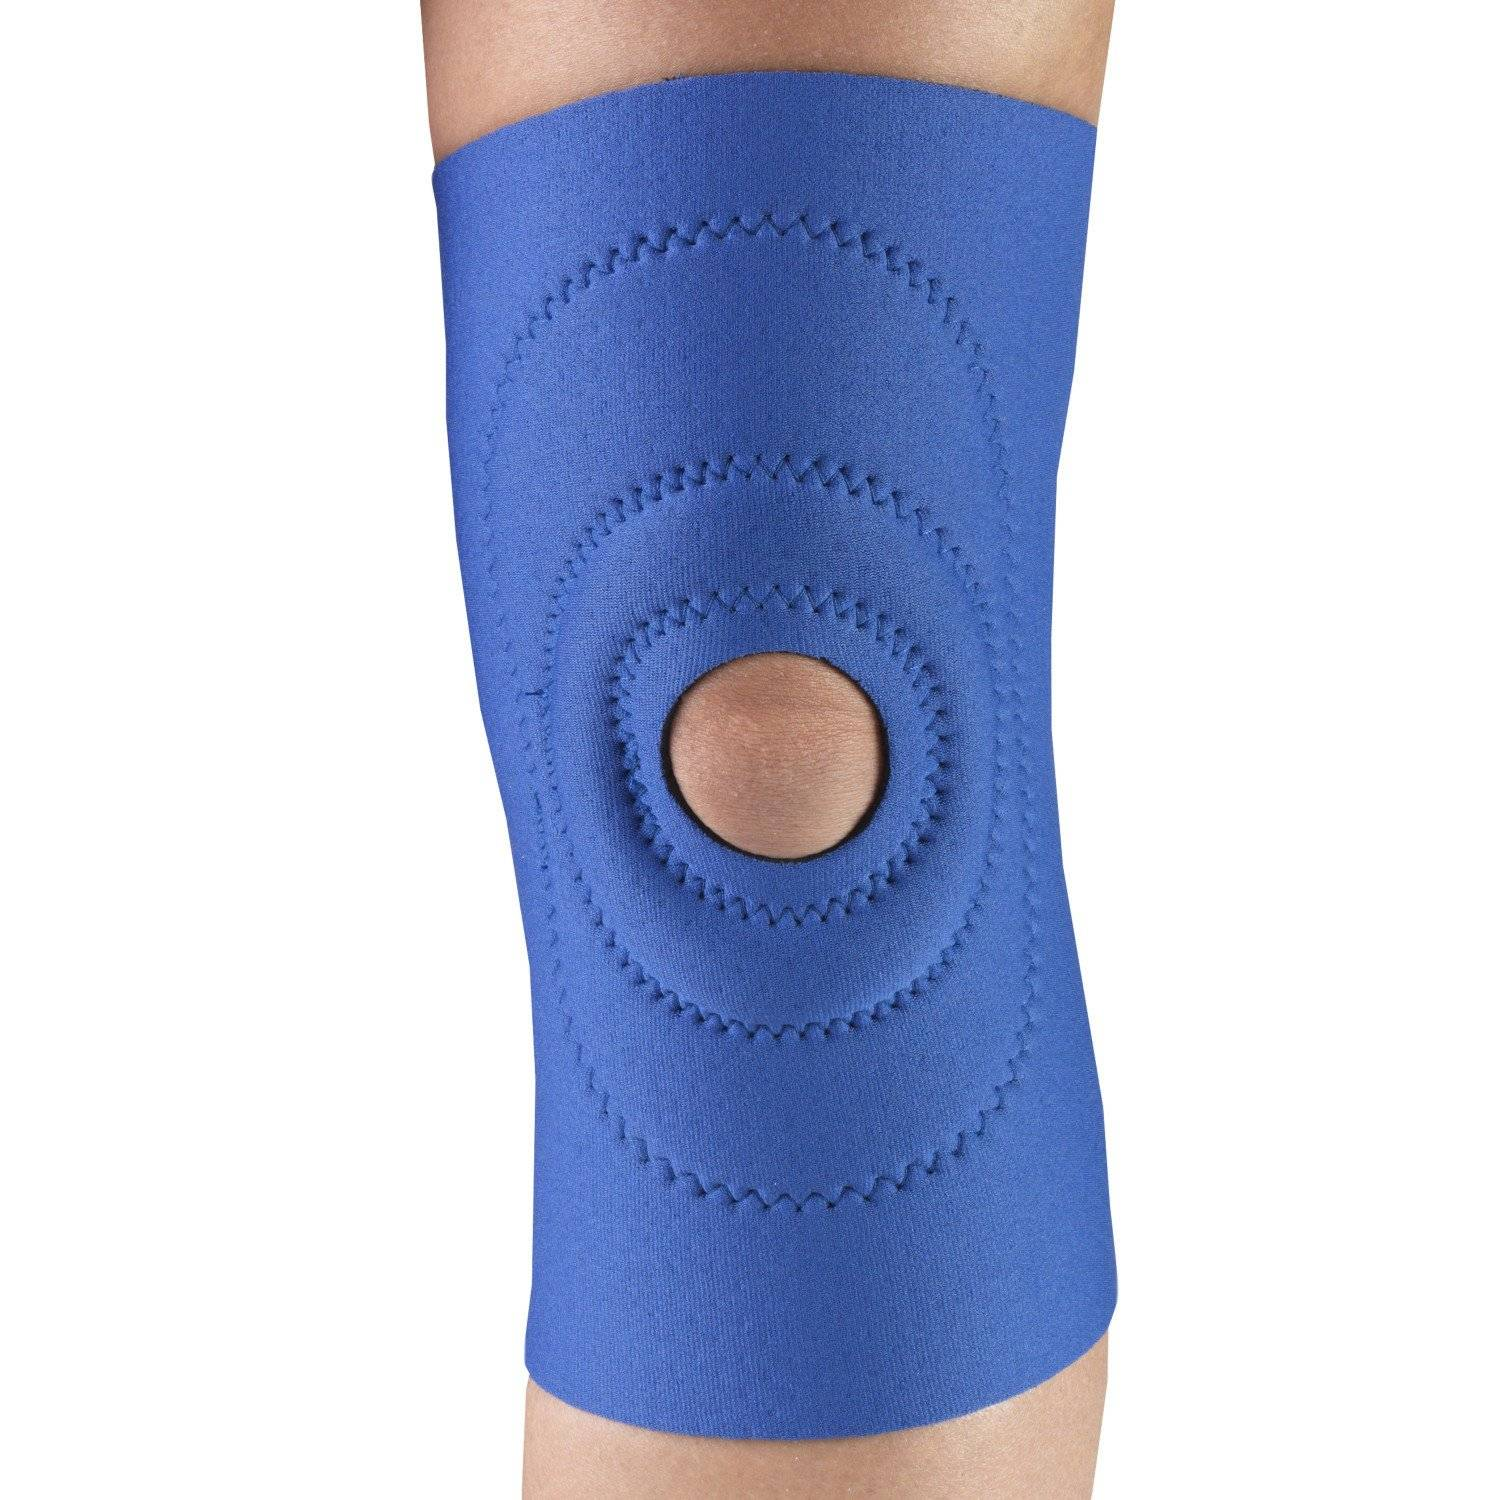 0309 / NEOPRENE KNEE SUPPORT - STABILIZER PAD